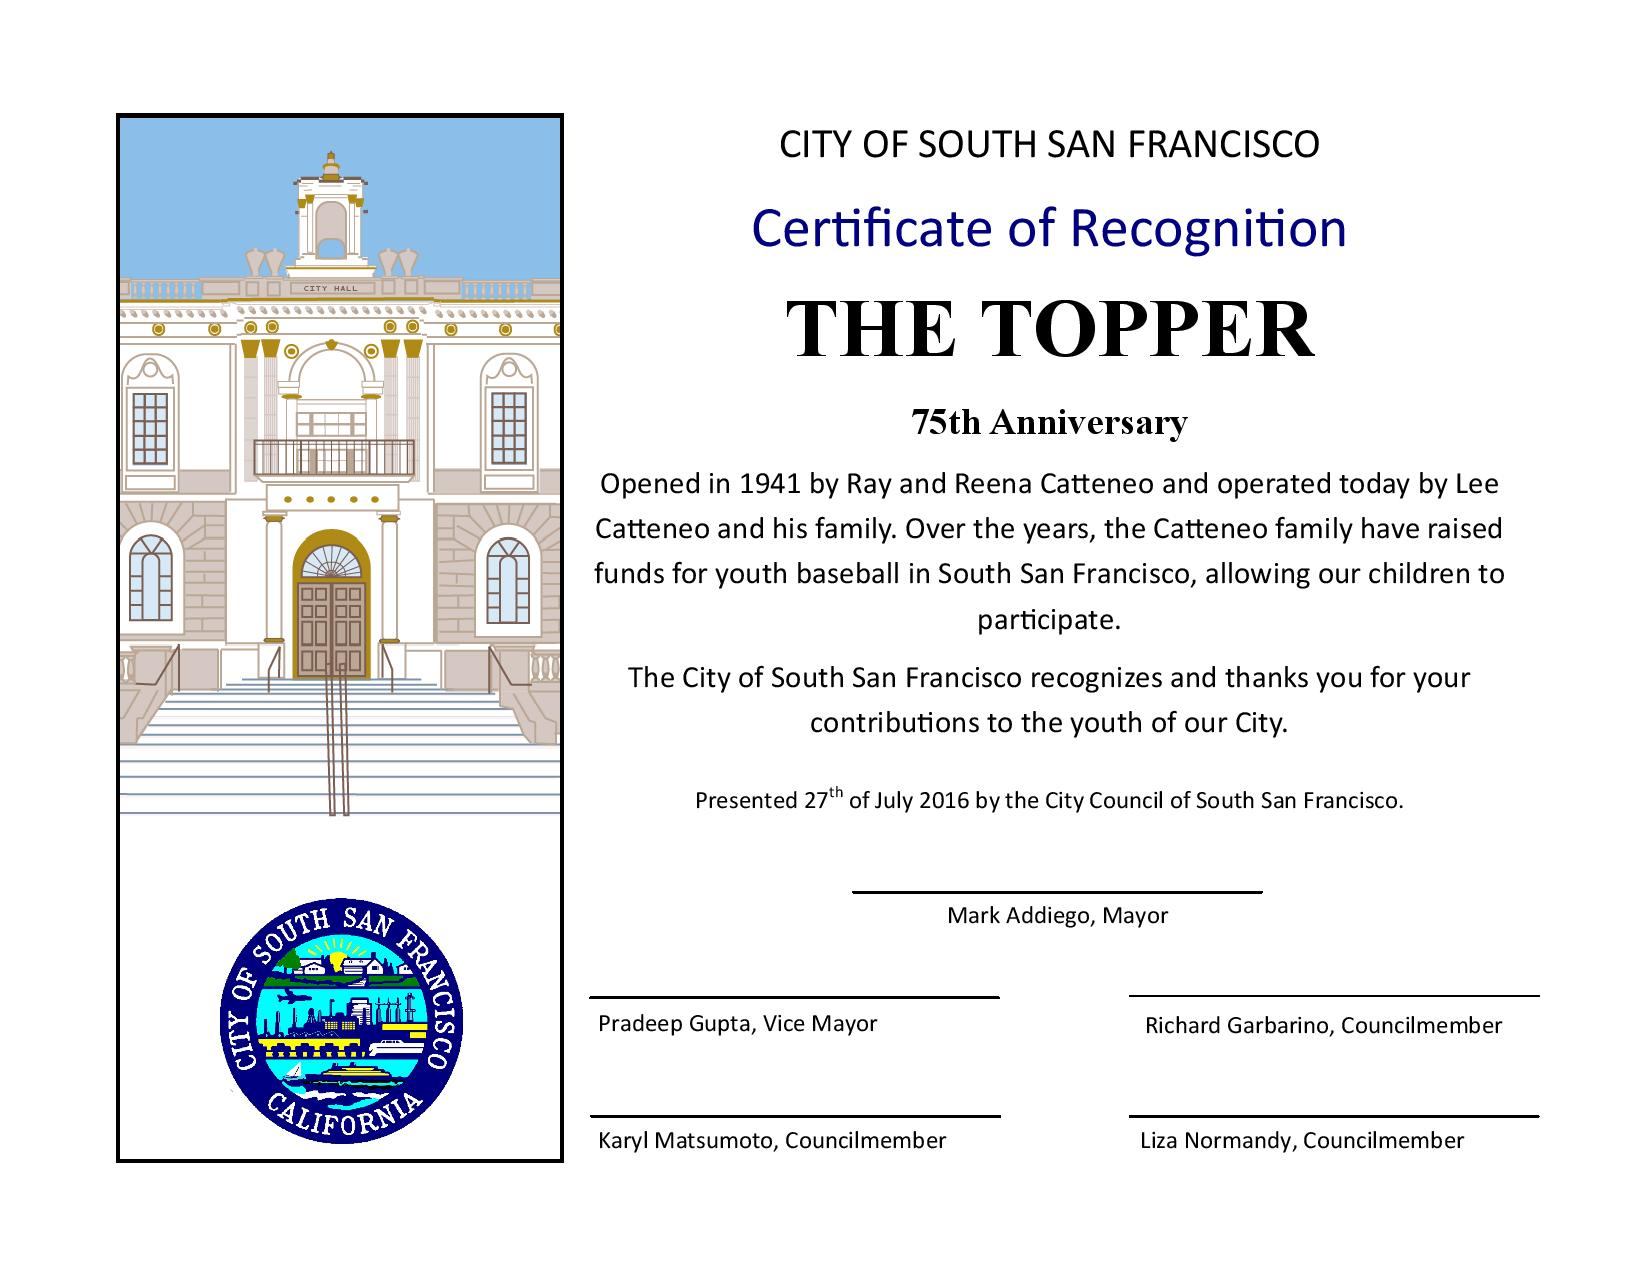 The TOPPER Receives Recognition on 75 Years in South City